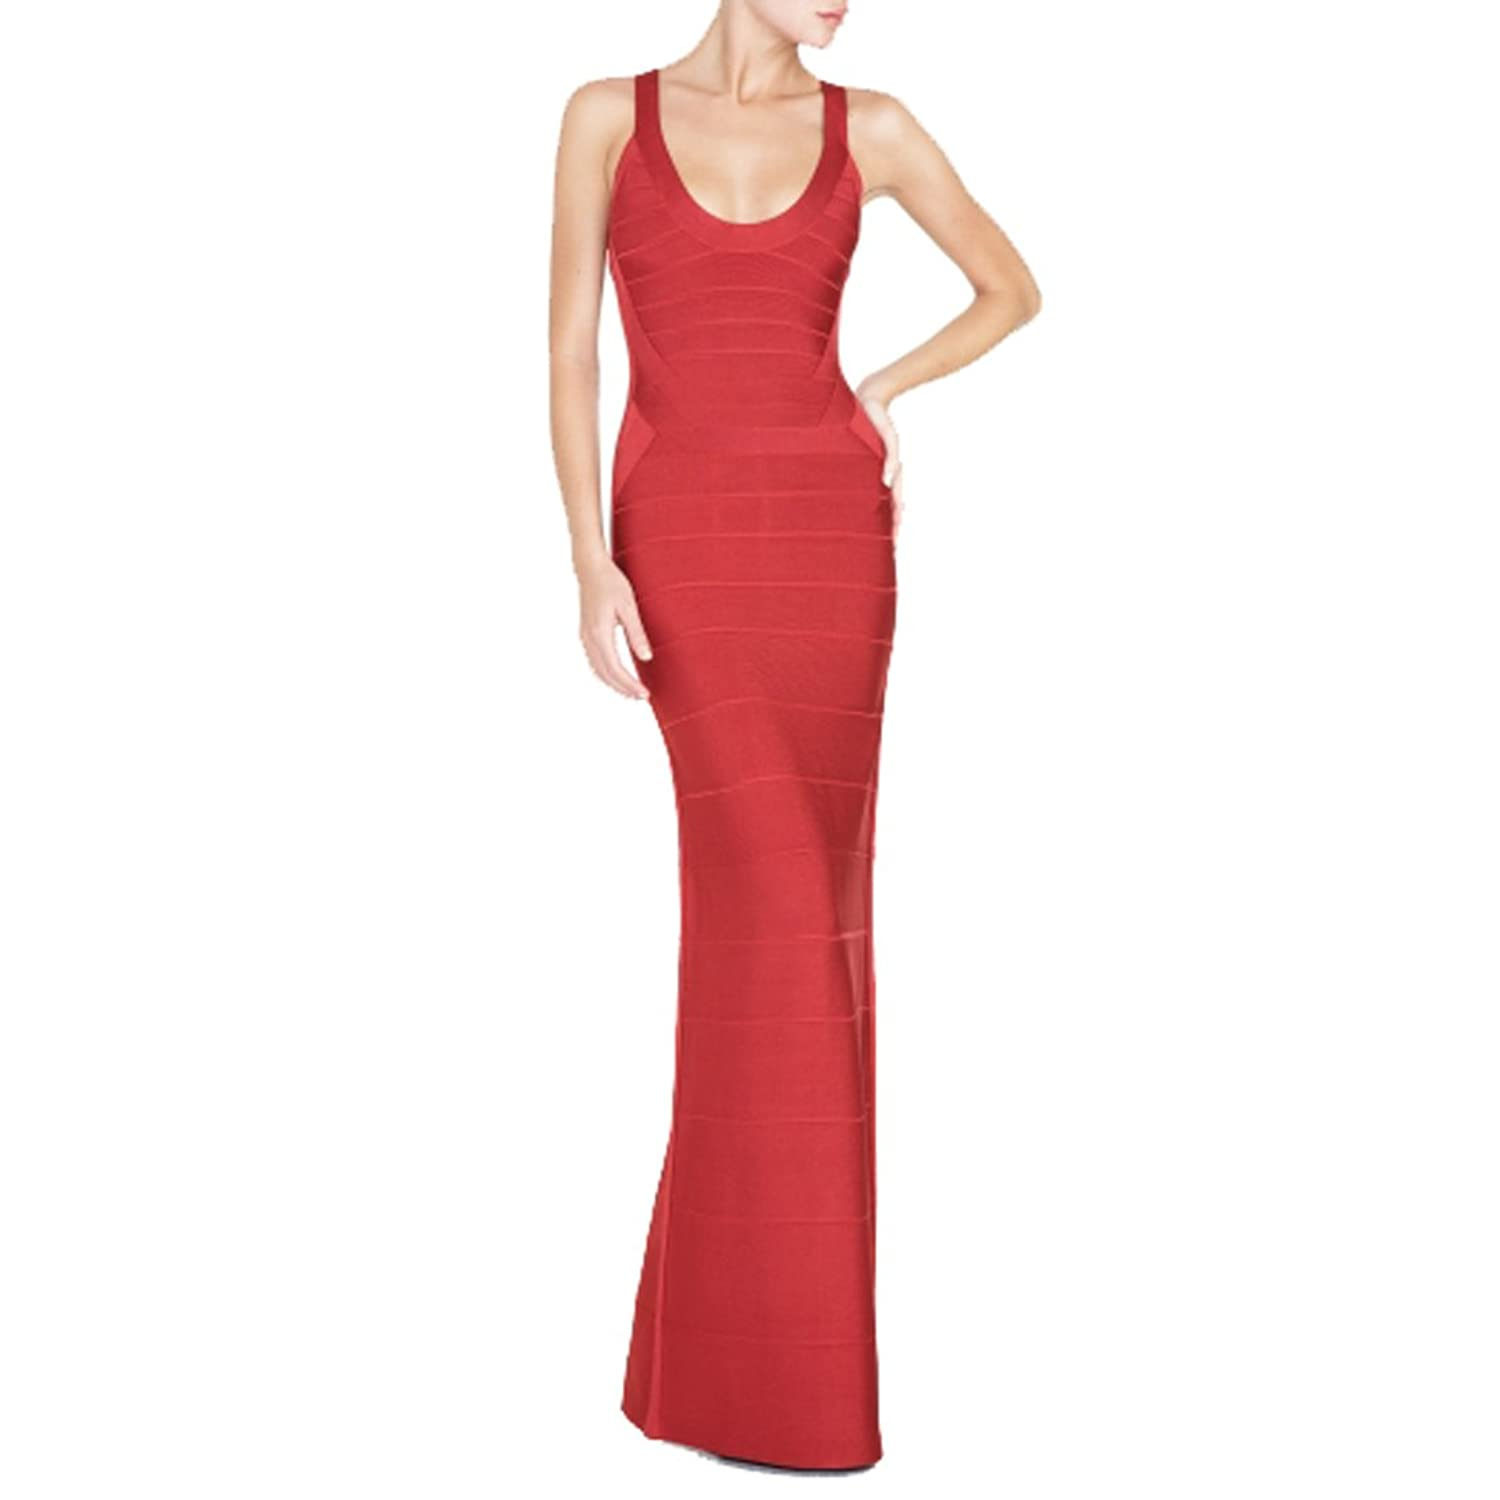 Hlbcbg Long Women's Bandage Bodycon Dress Party Cocktail Dress Red 2140